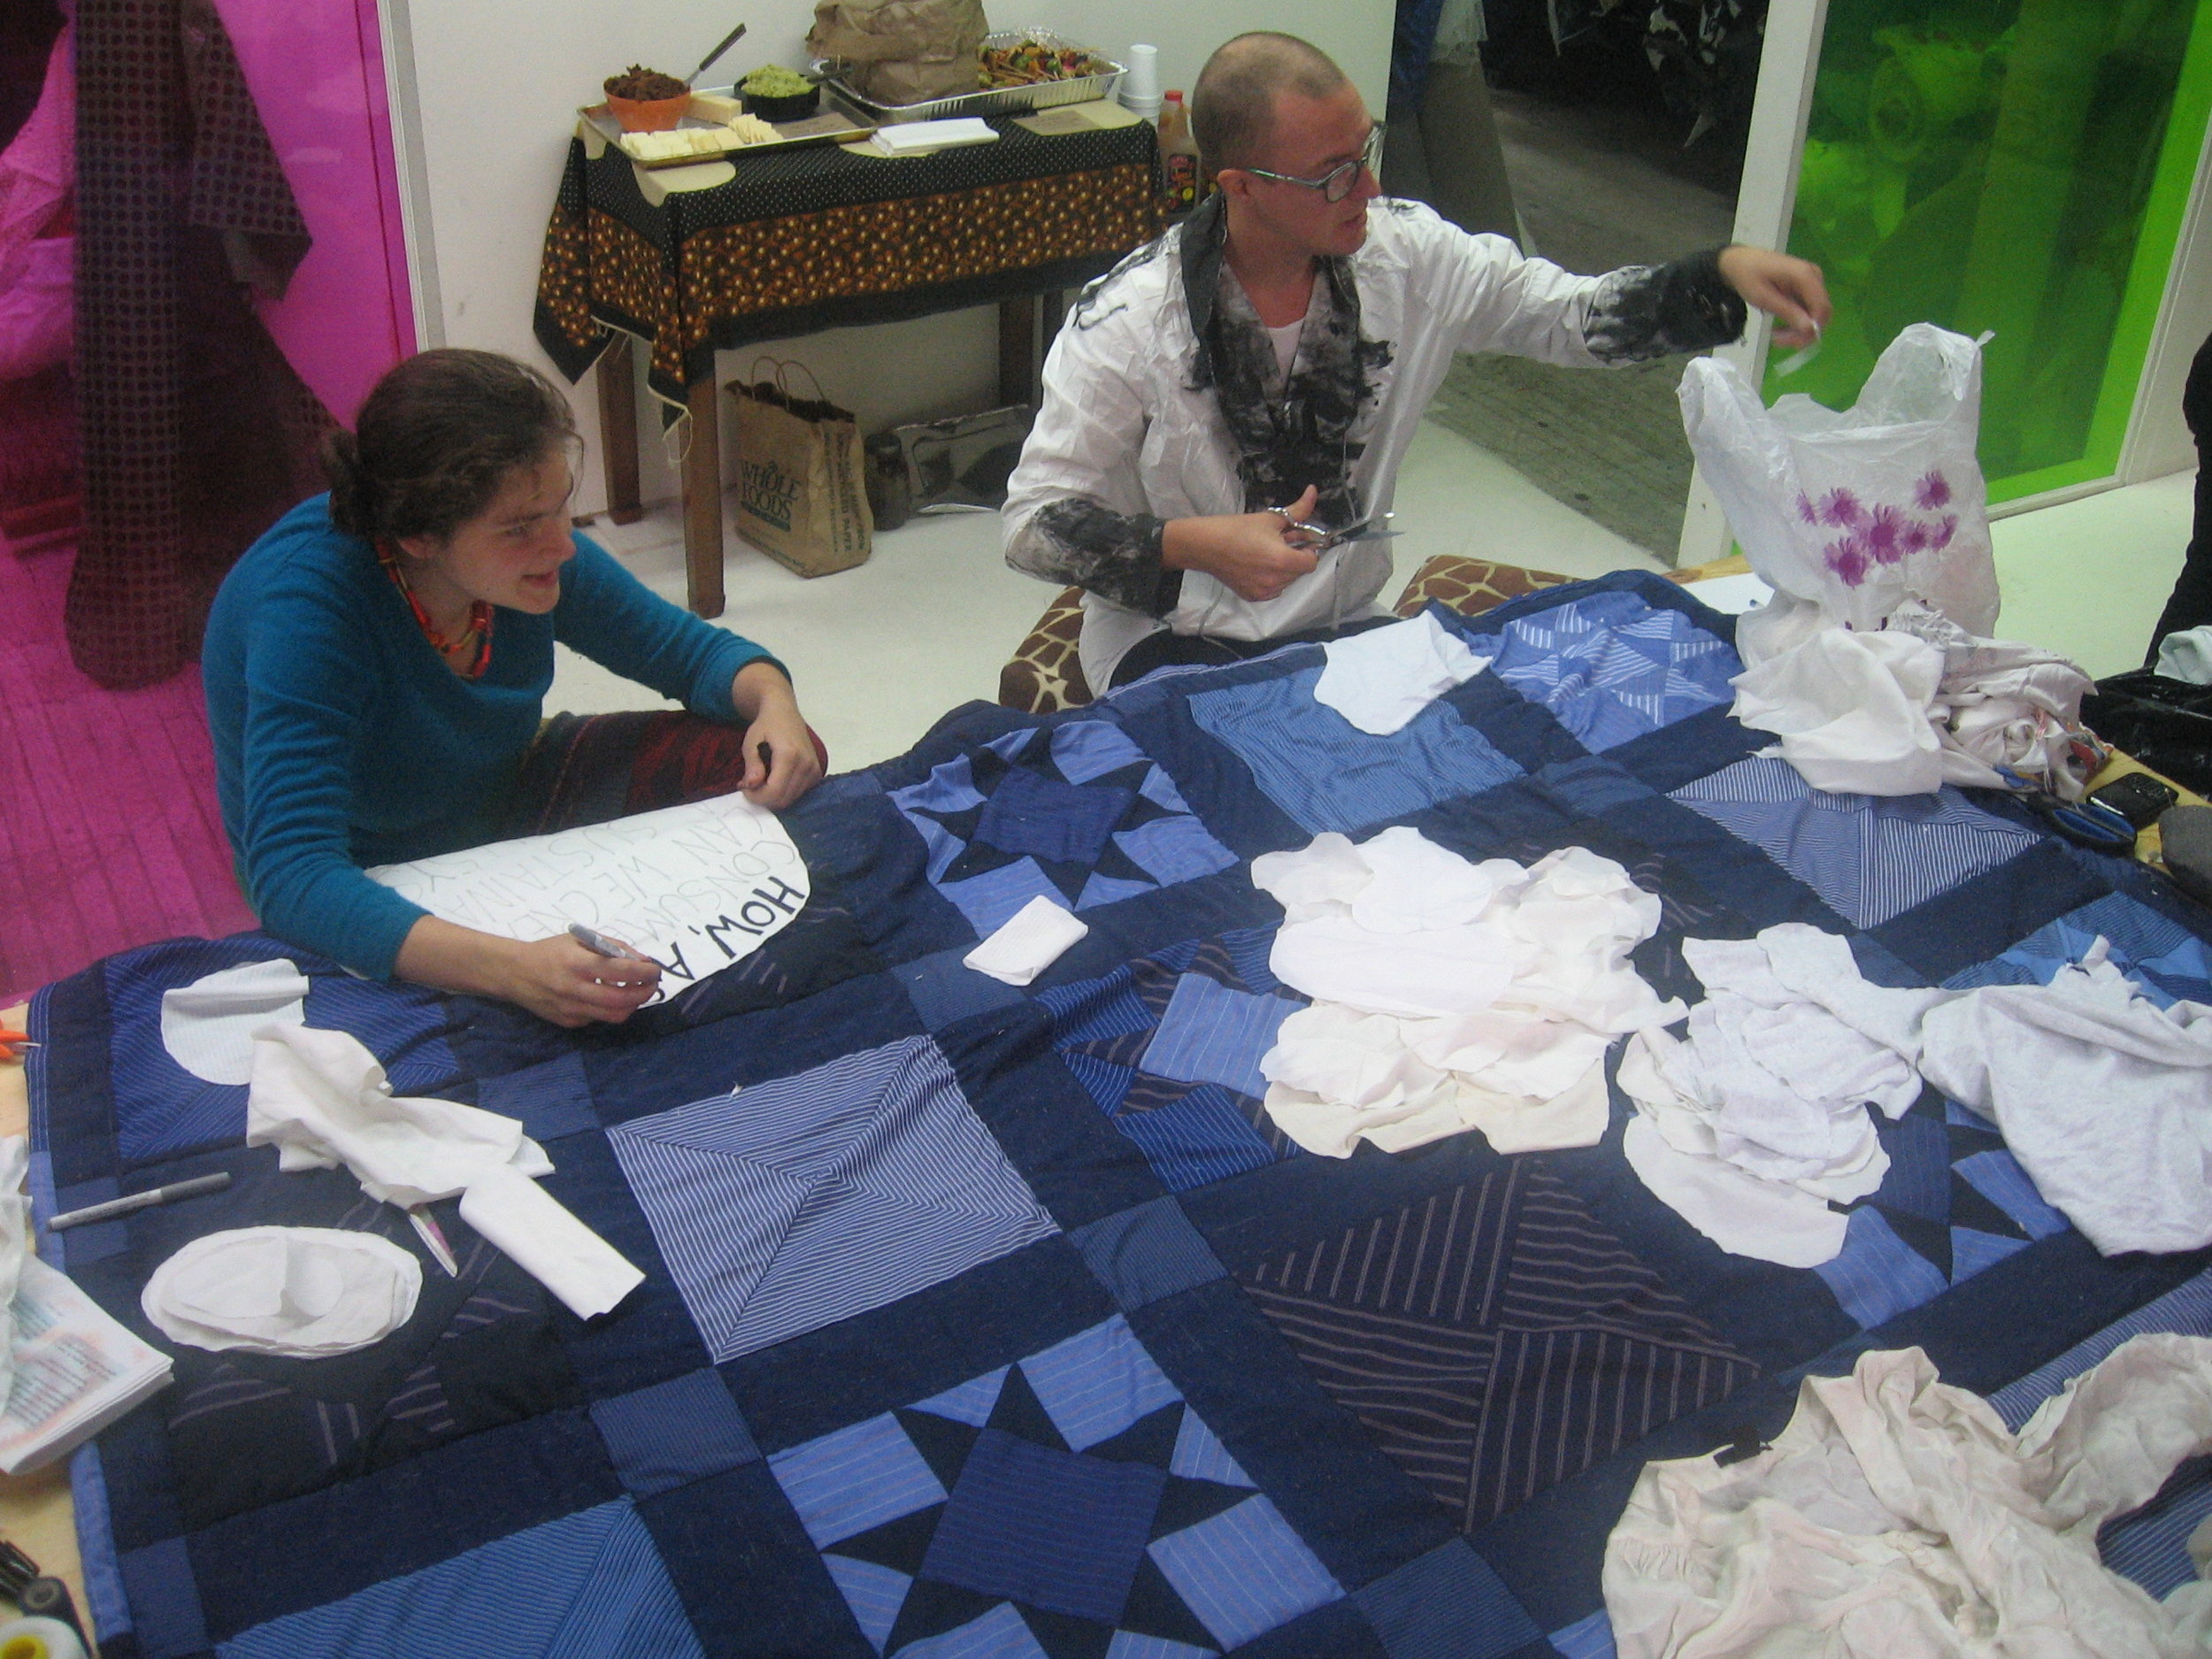 working-on-the-quilt_6292787411_o.jpg